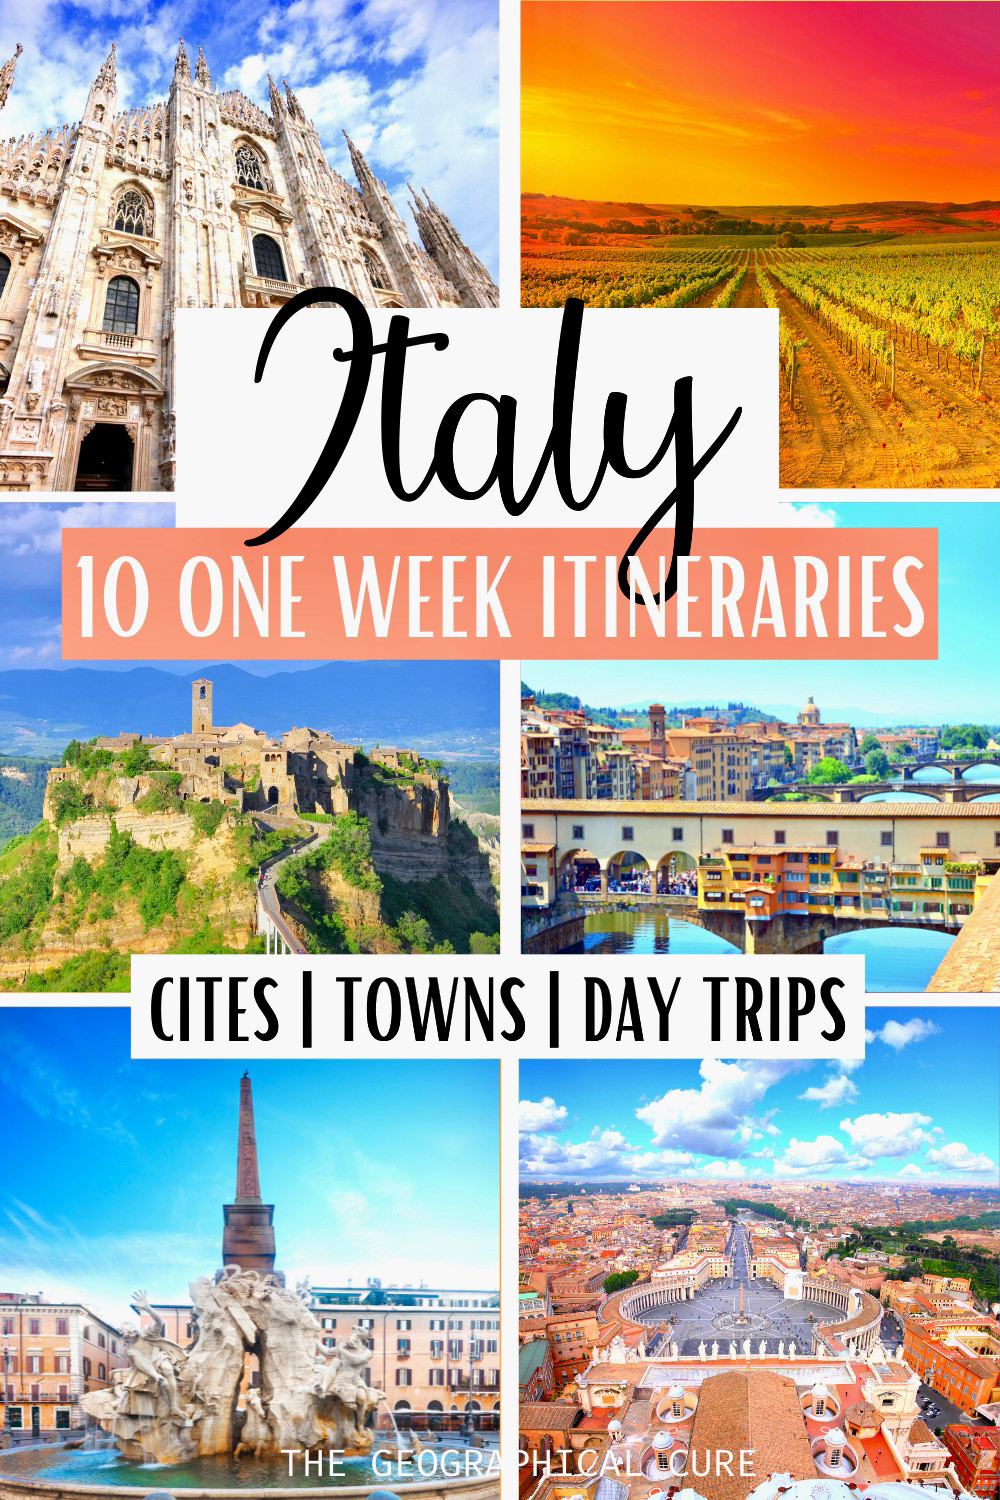 11 ways to spend 1 week in Italy